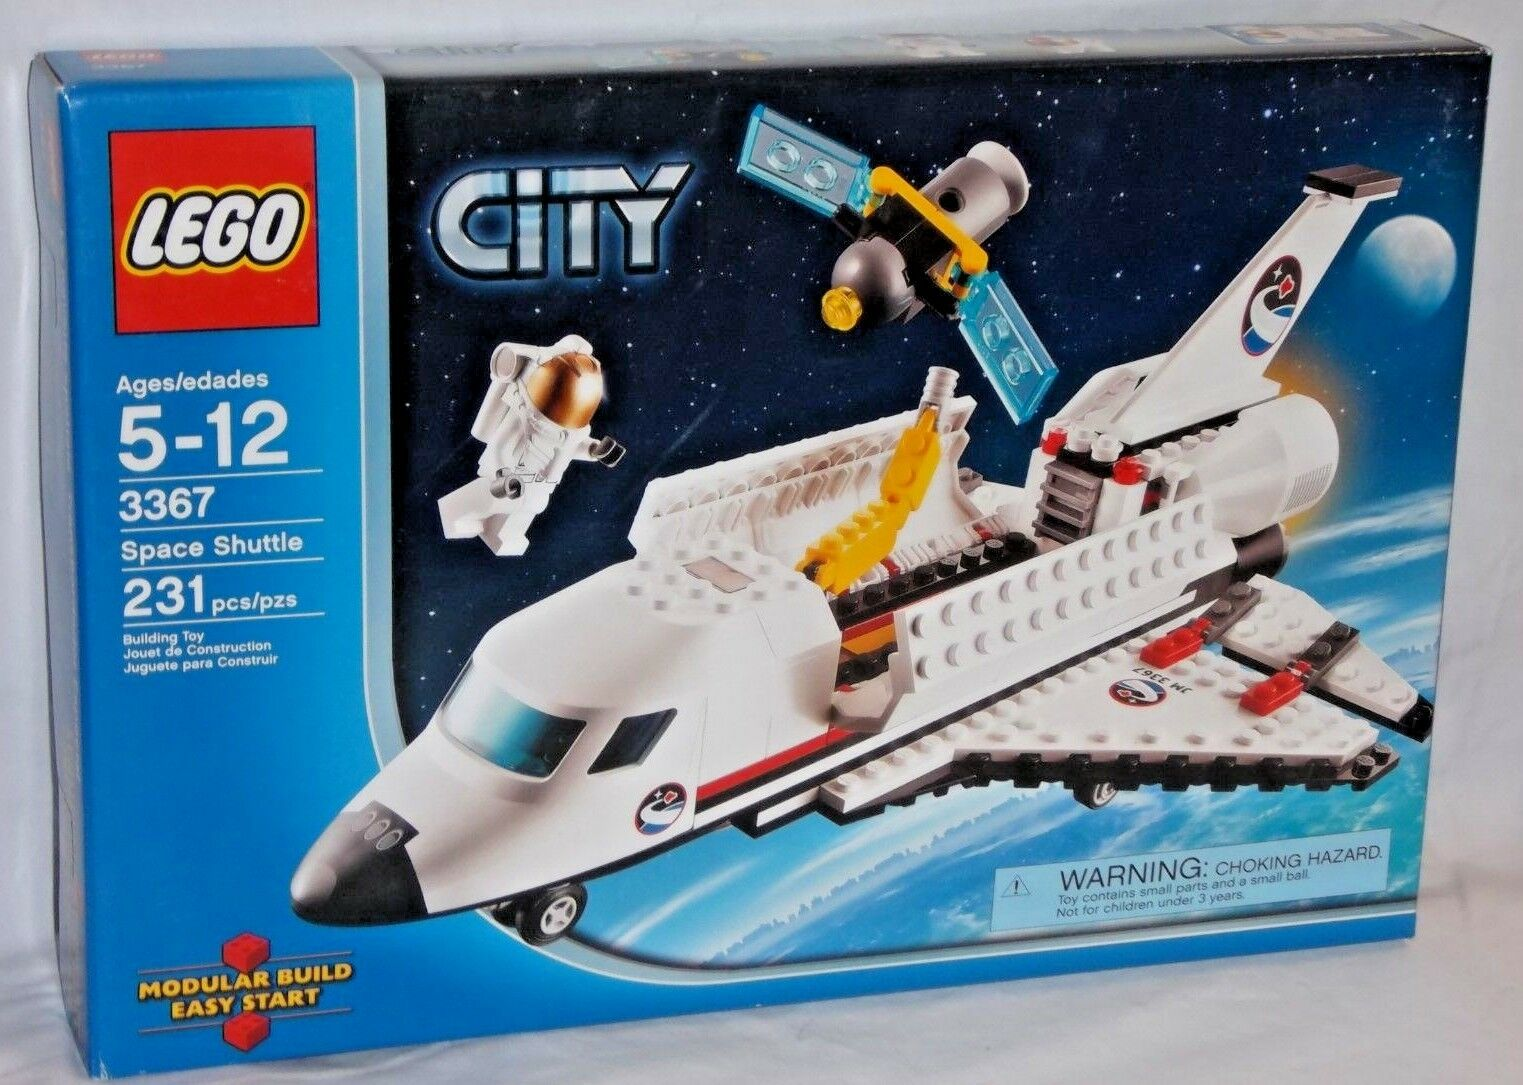 Scellé 3367  Lego City Space Shuttle Launch Pad astronaute Satellite 231 Pcs Set  juste pour toi